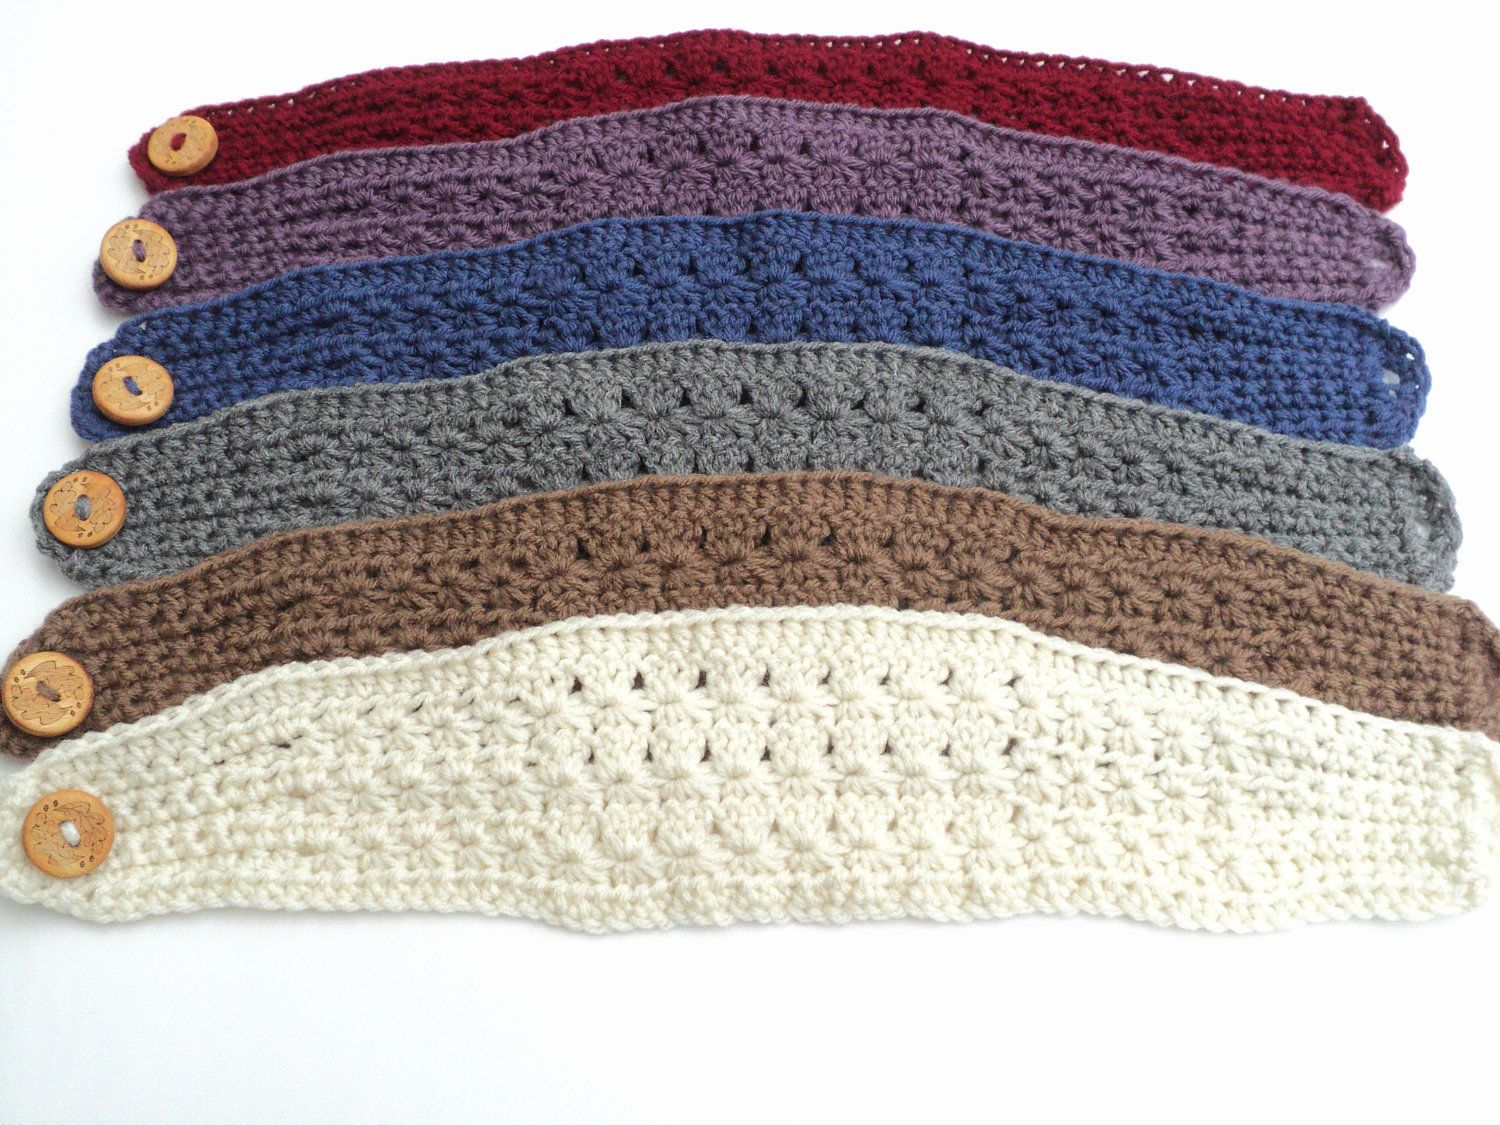 Crochet PATTERN - Star Stitch Wide Headband Pattern (Adult and ...